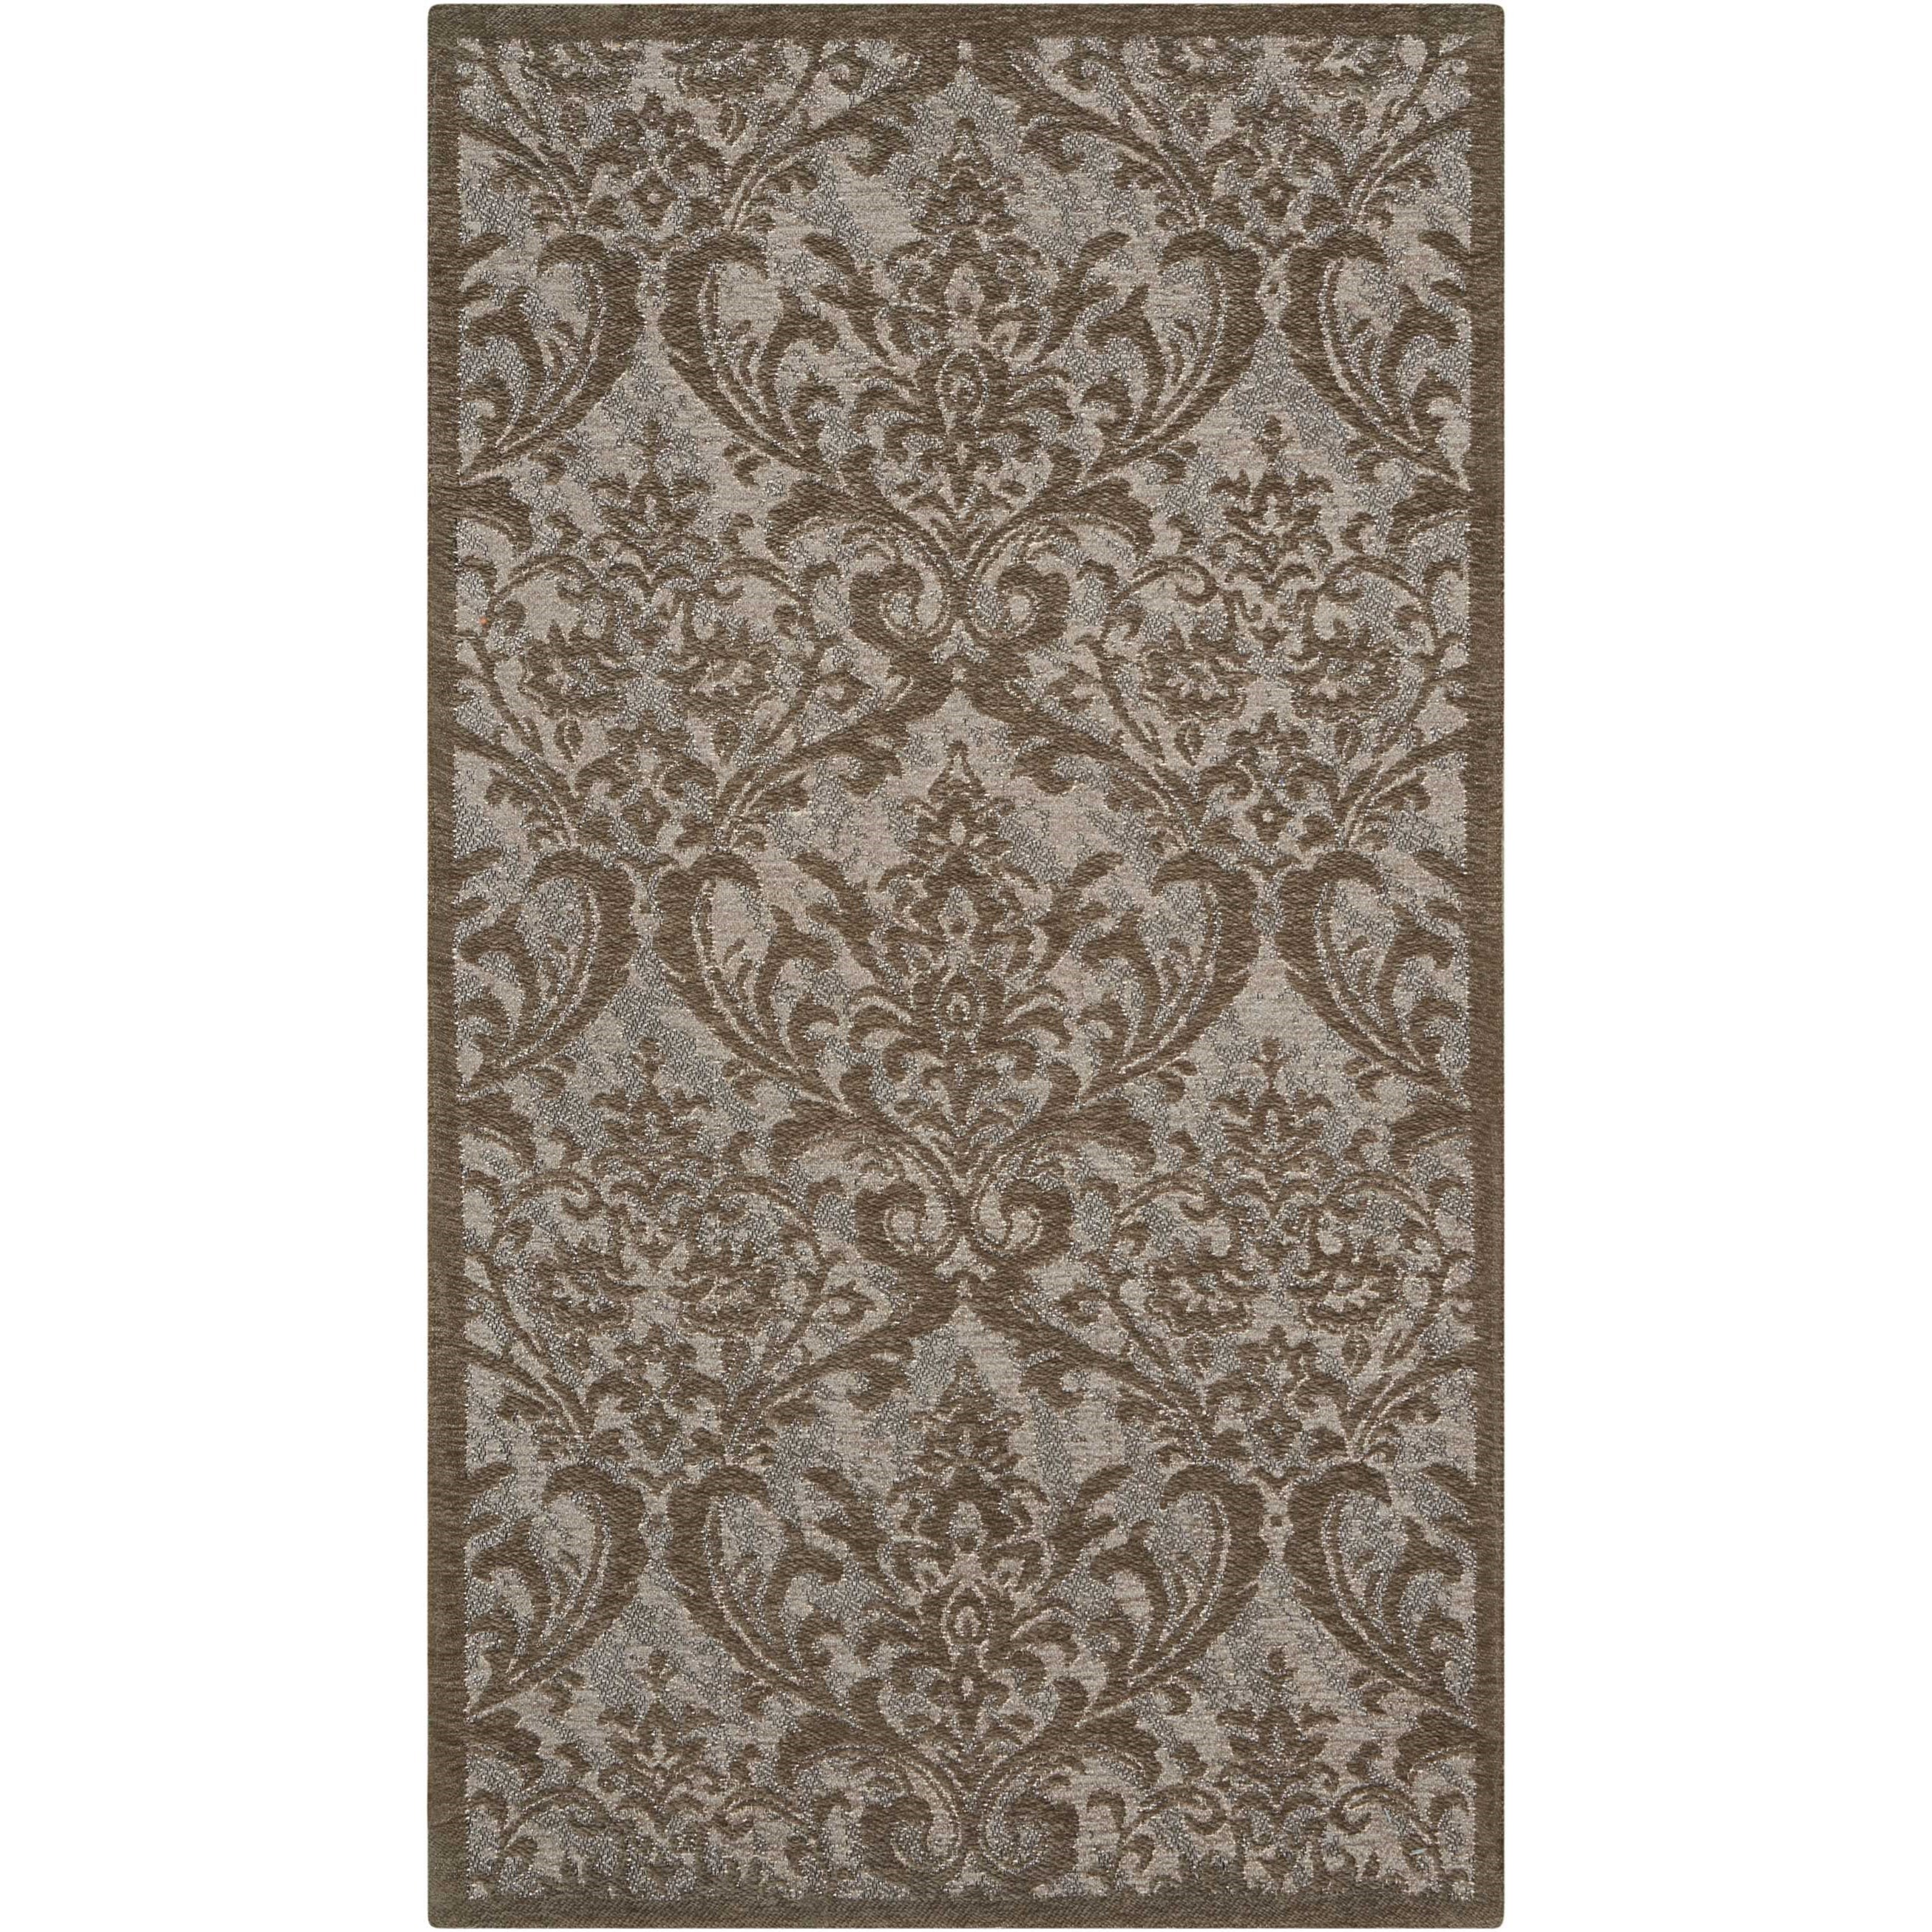 "Damask 2'3"" X 3'9"" Grey Rug by Nourison at Home Collections Furniture"